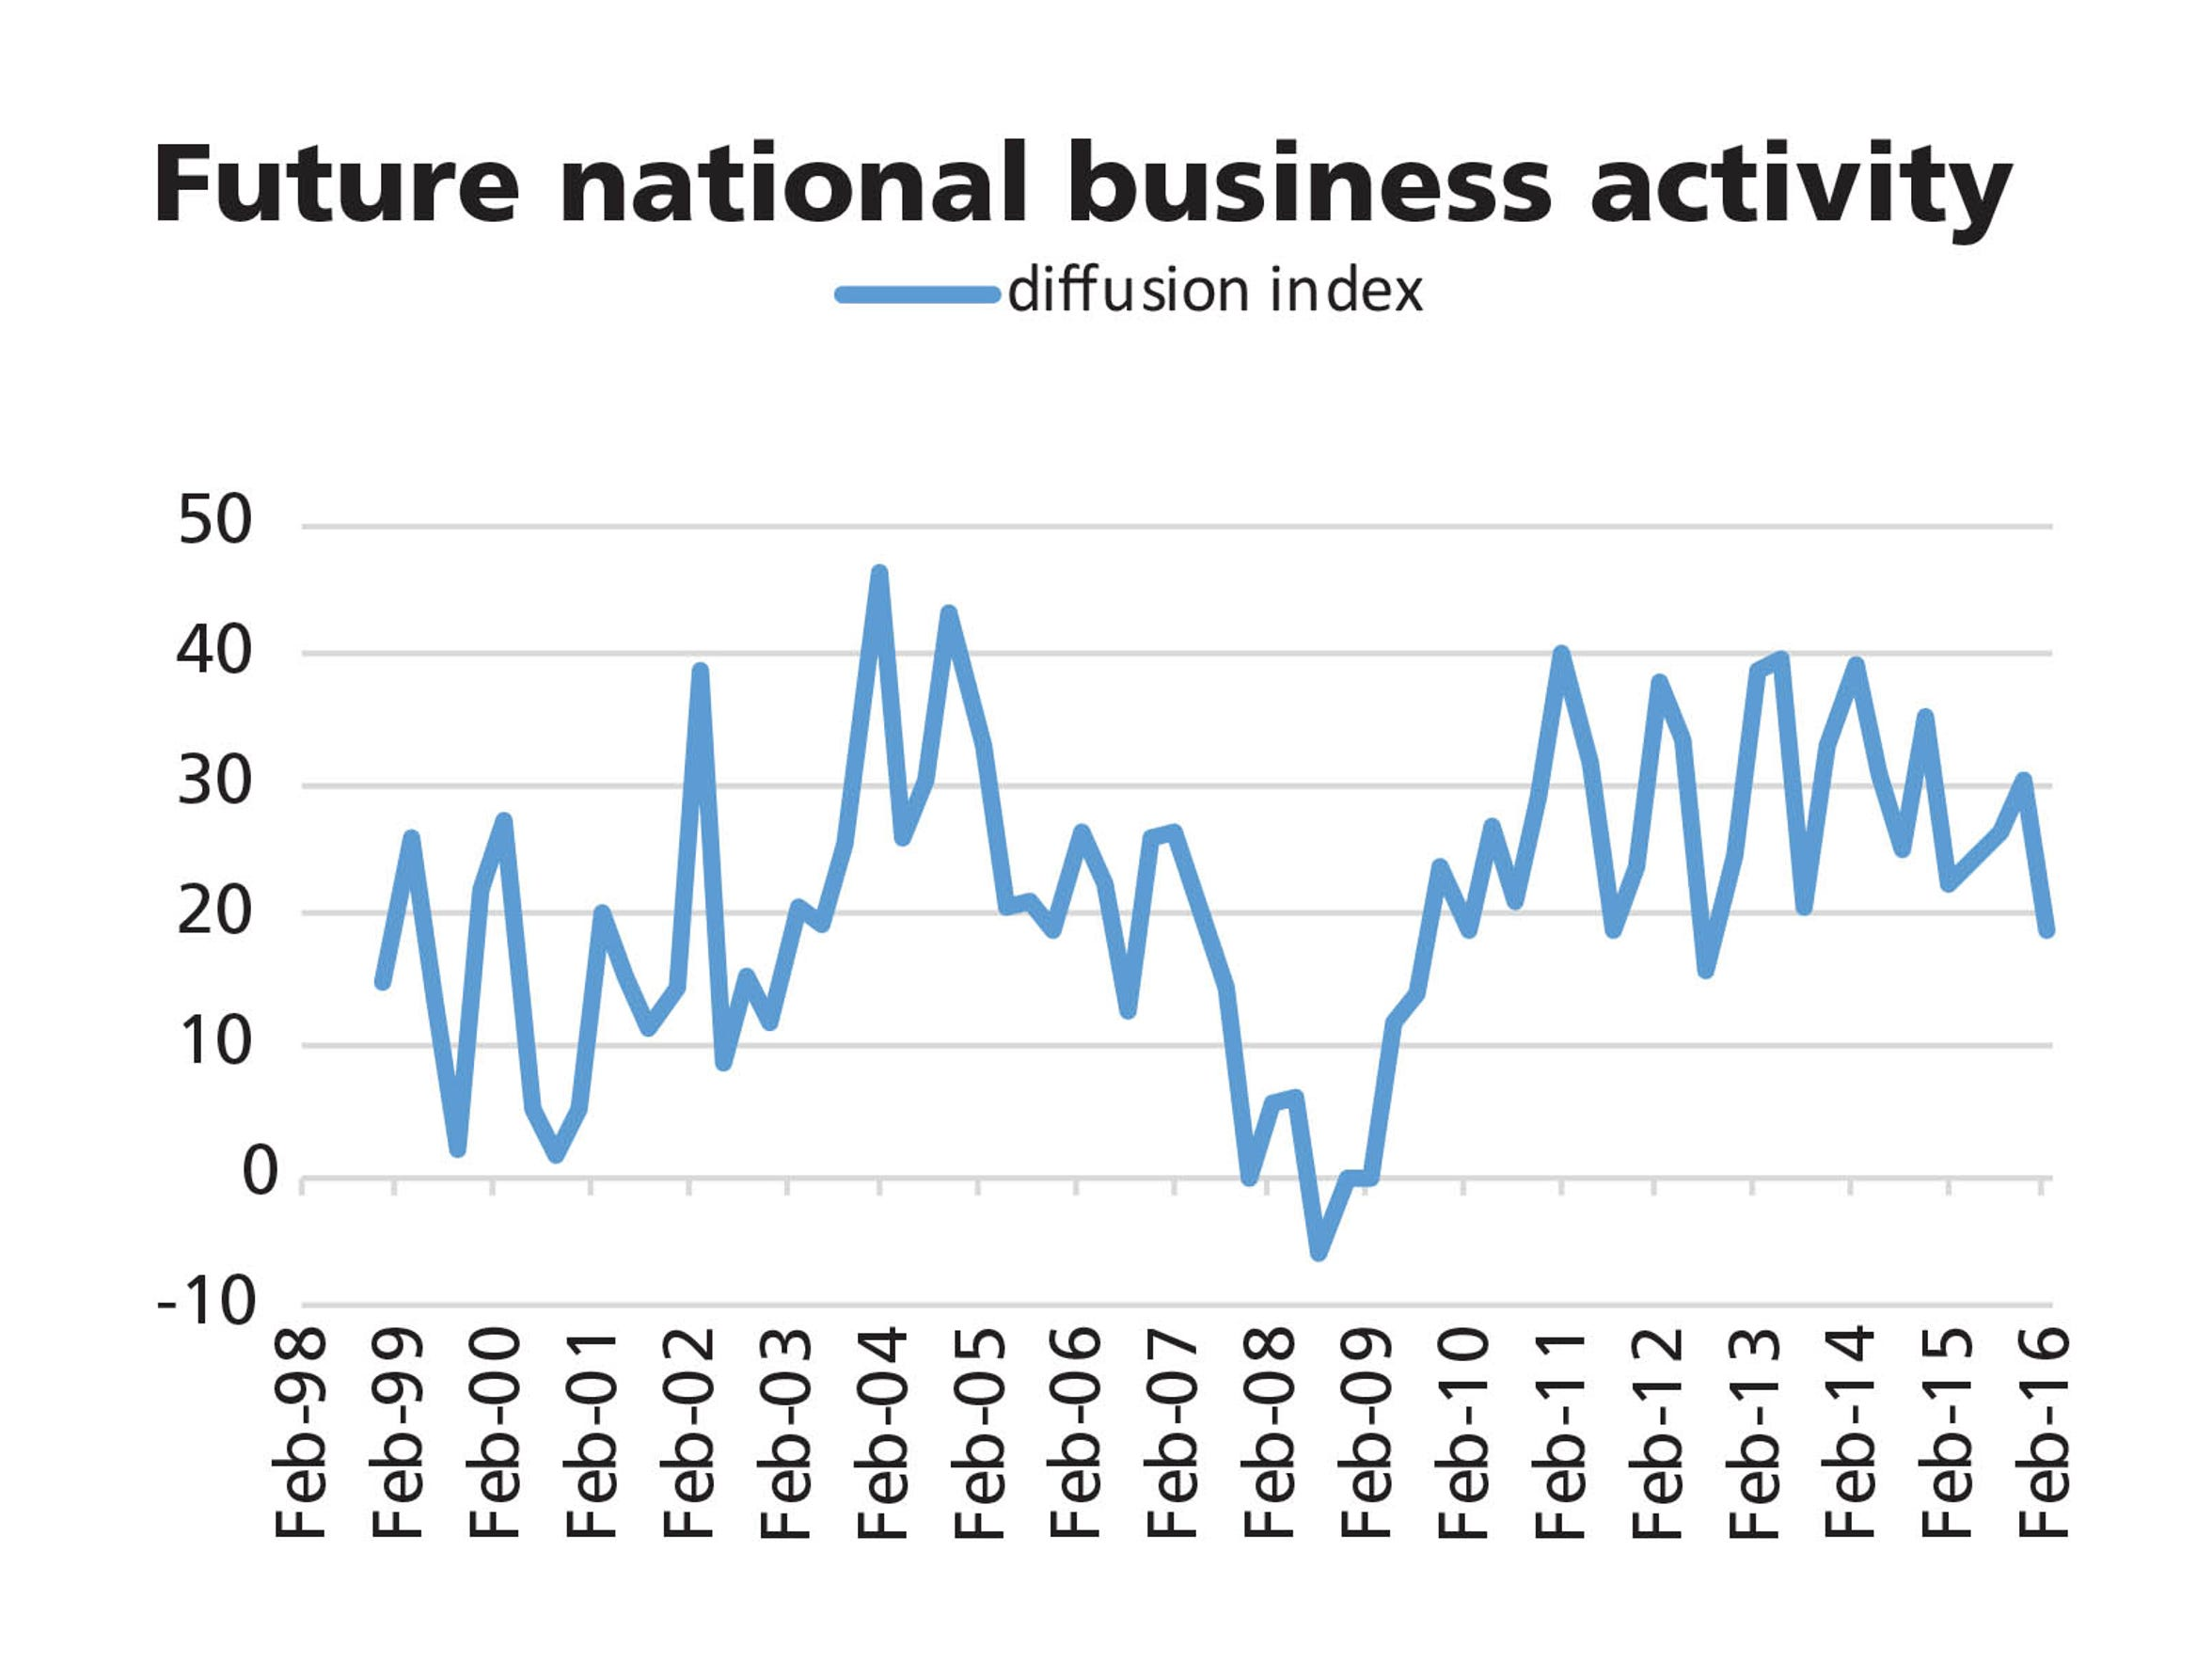 National business activity